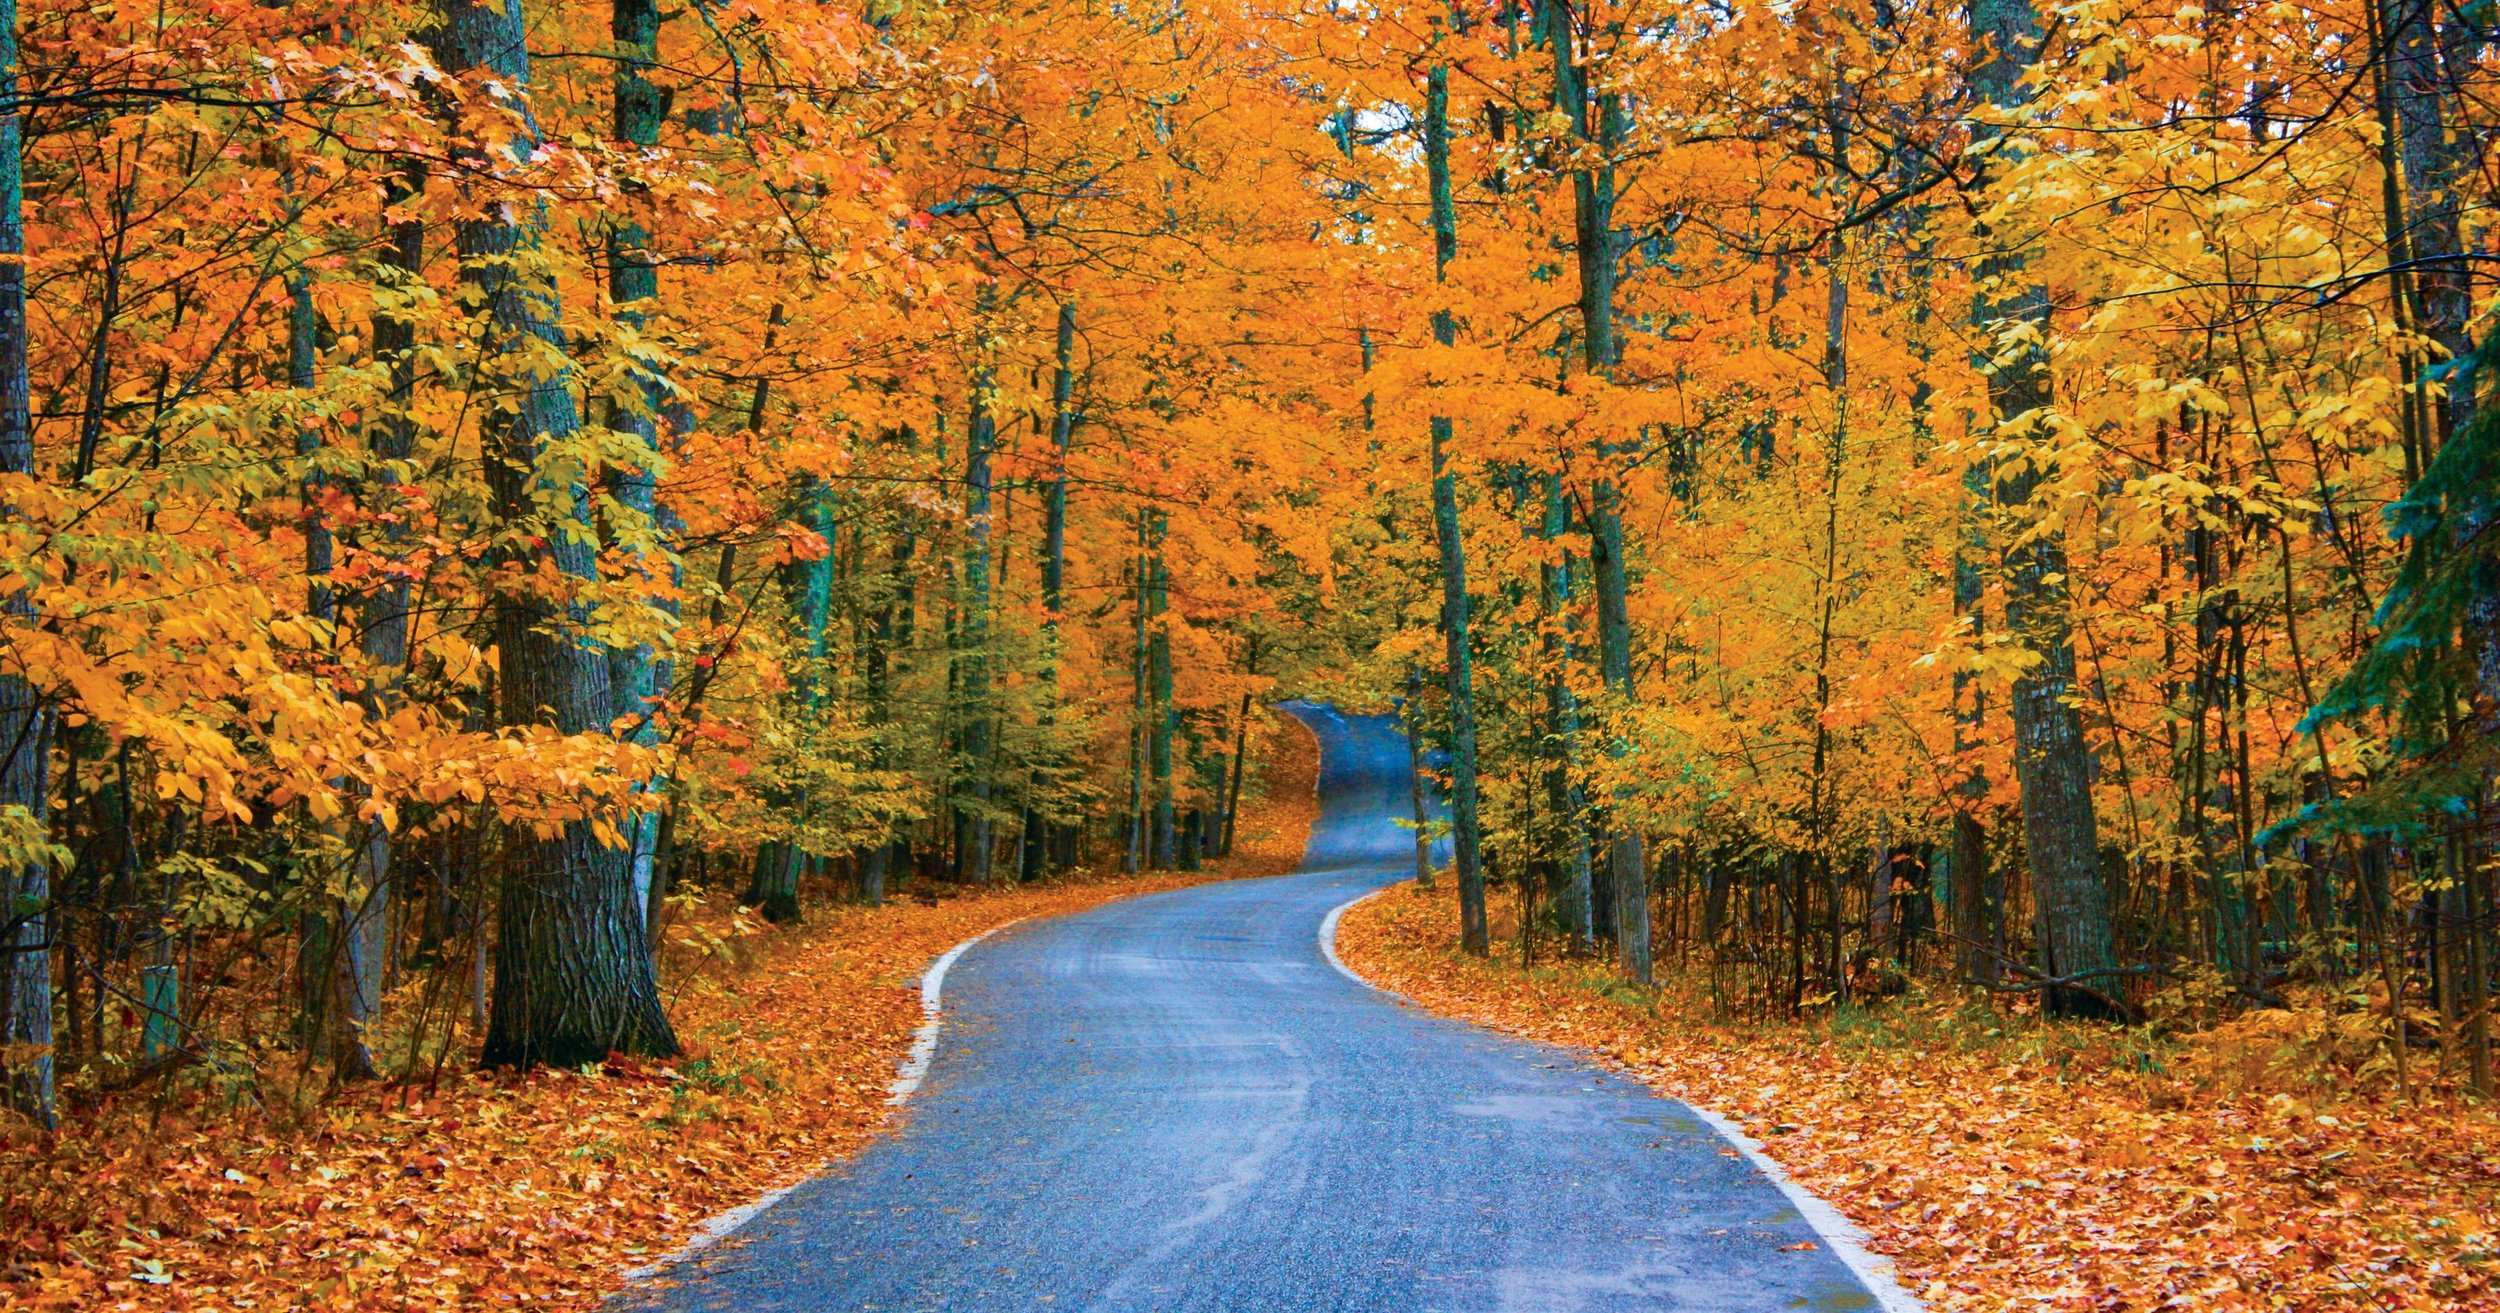 636123971646125841-Tunnel-of-Trees-Outdoor-Image.jpg